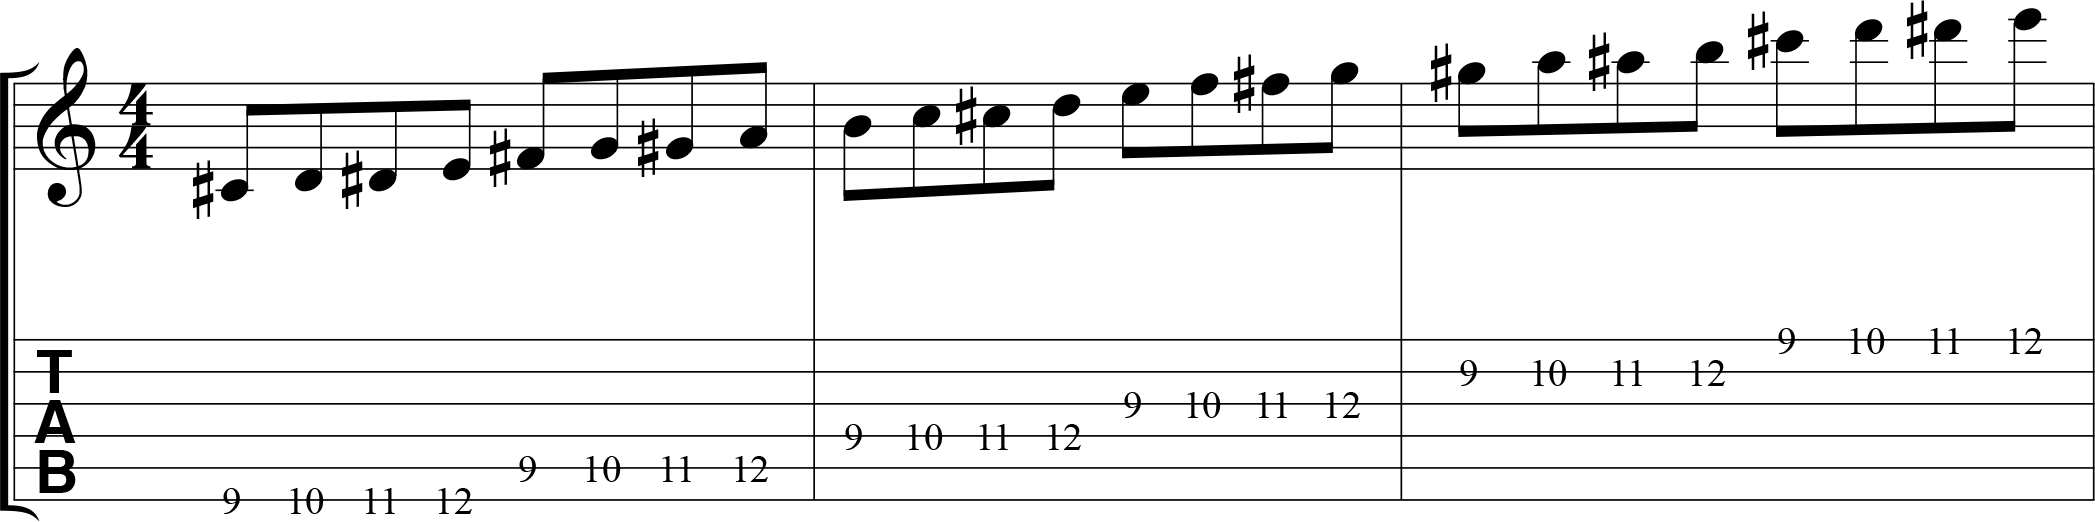 Chromatic alternate picking exercise for guitar, 1234, ascending.